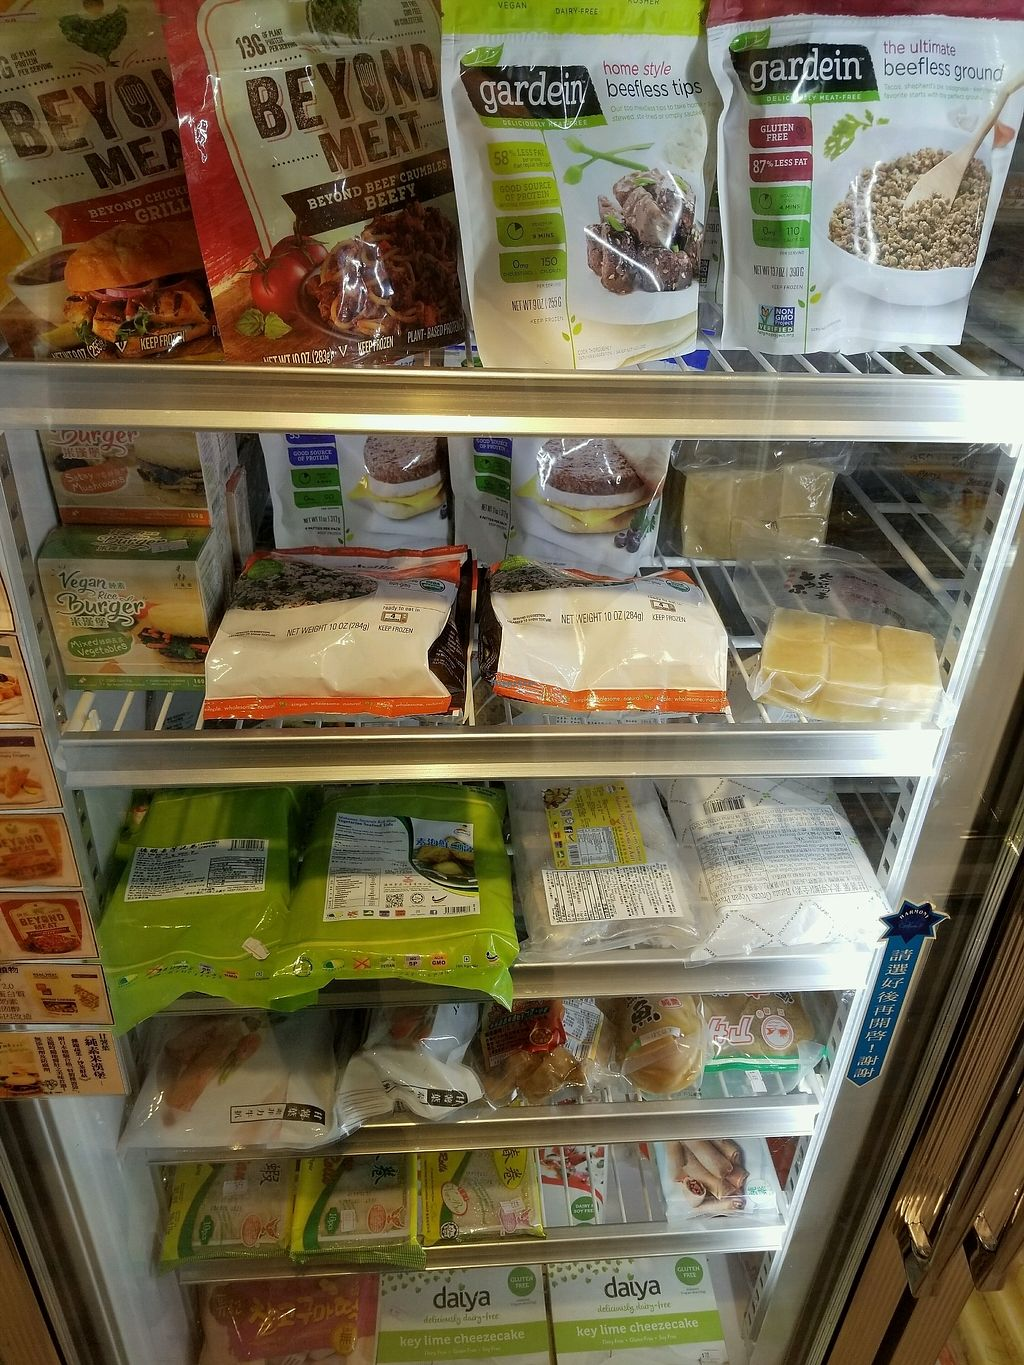 """Photo of Kaso Grocery  by <a href=""""/members/profile/SESMom37"""">SESMom37</a> <br/>frozen selection <br/> April 11, 2018  - <a href='/contact/abuse/image/109547/383749'>Report</a>"""